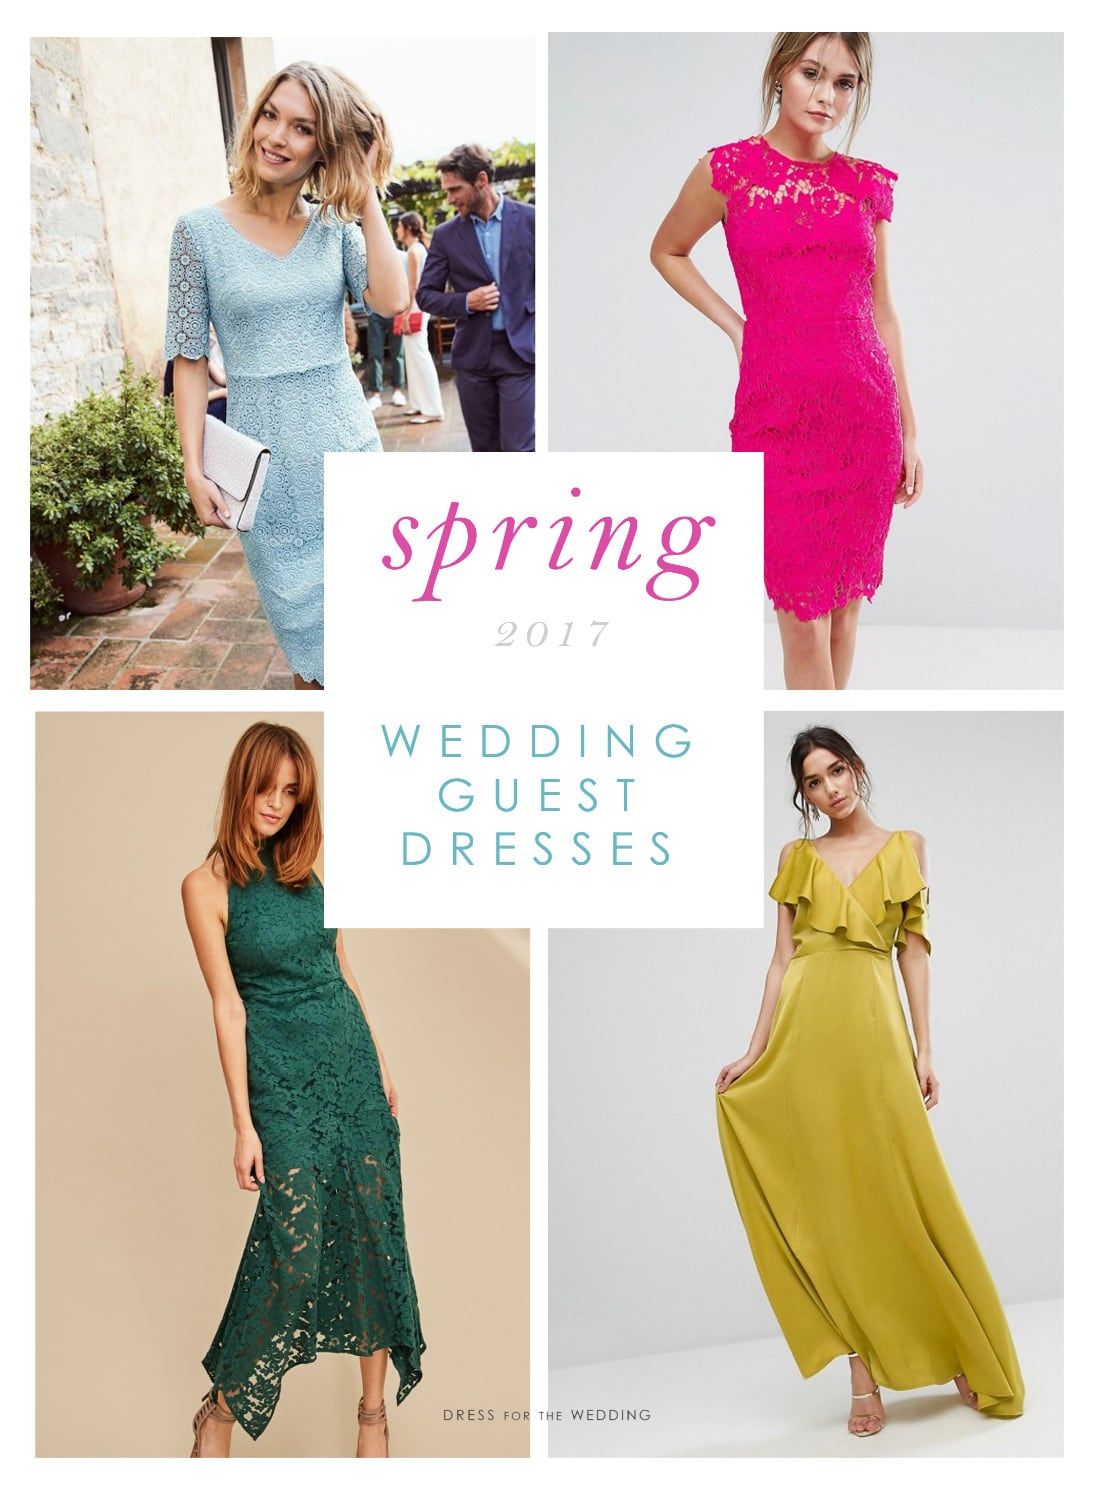 Beautiful dresses to wear as a wedding guest dress for for Vineyard wedding dresses for guests